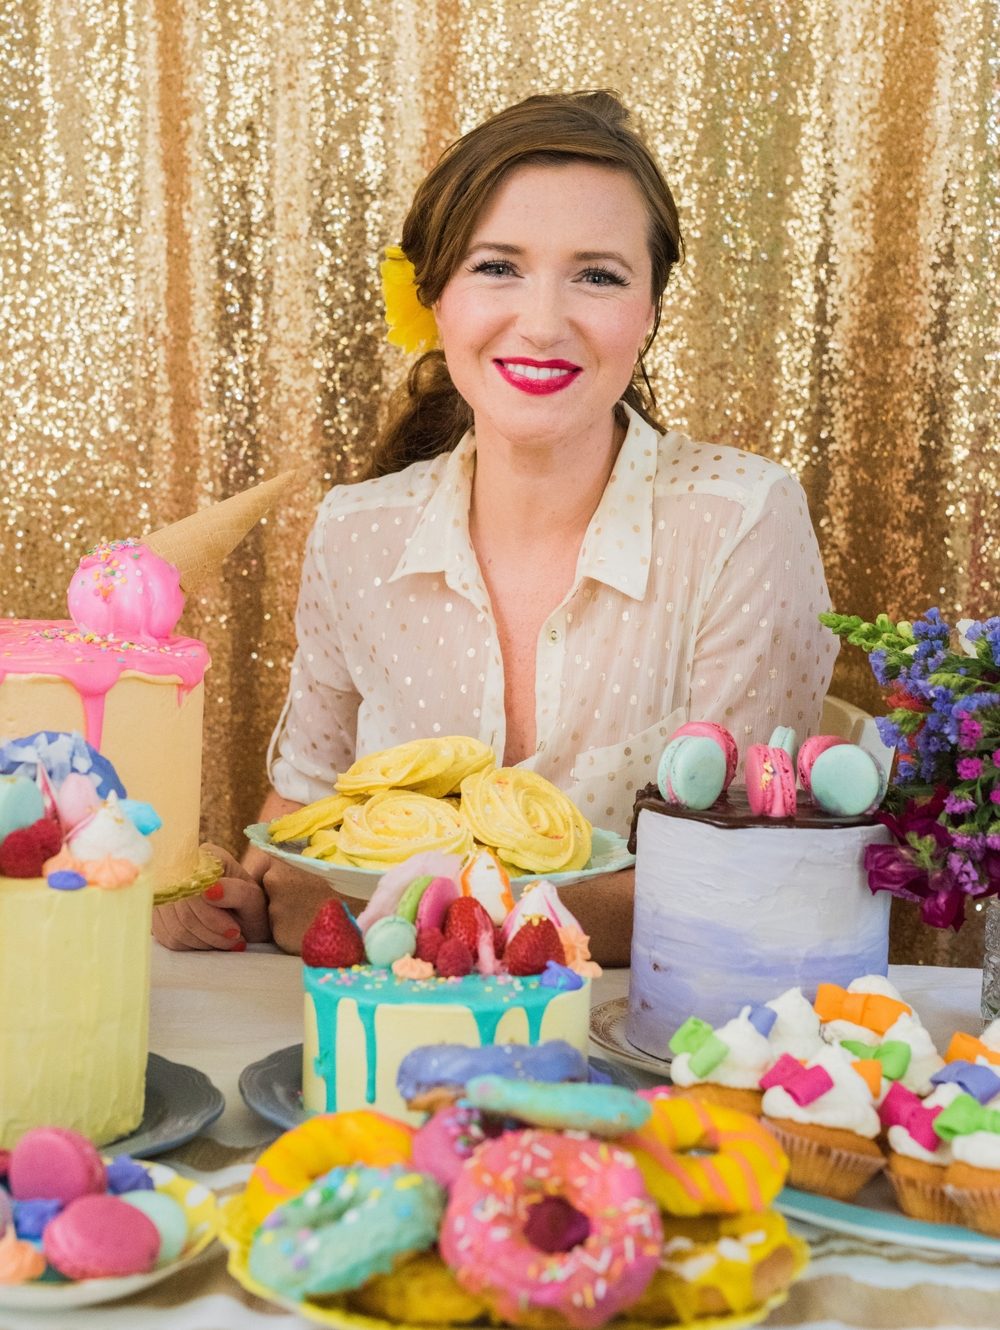 If you would like Jessica to appear at your event, organize a baking demonstration at your company, promote or endorse your product, or to arrange a partnership or exchange please email Alba at info@lincolnapartmentbakery.com